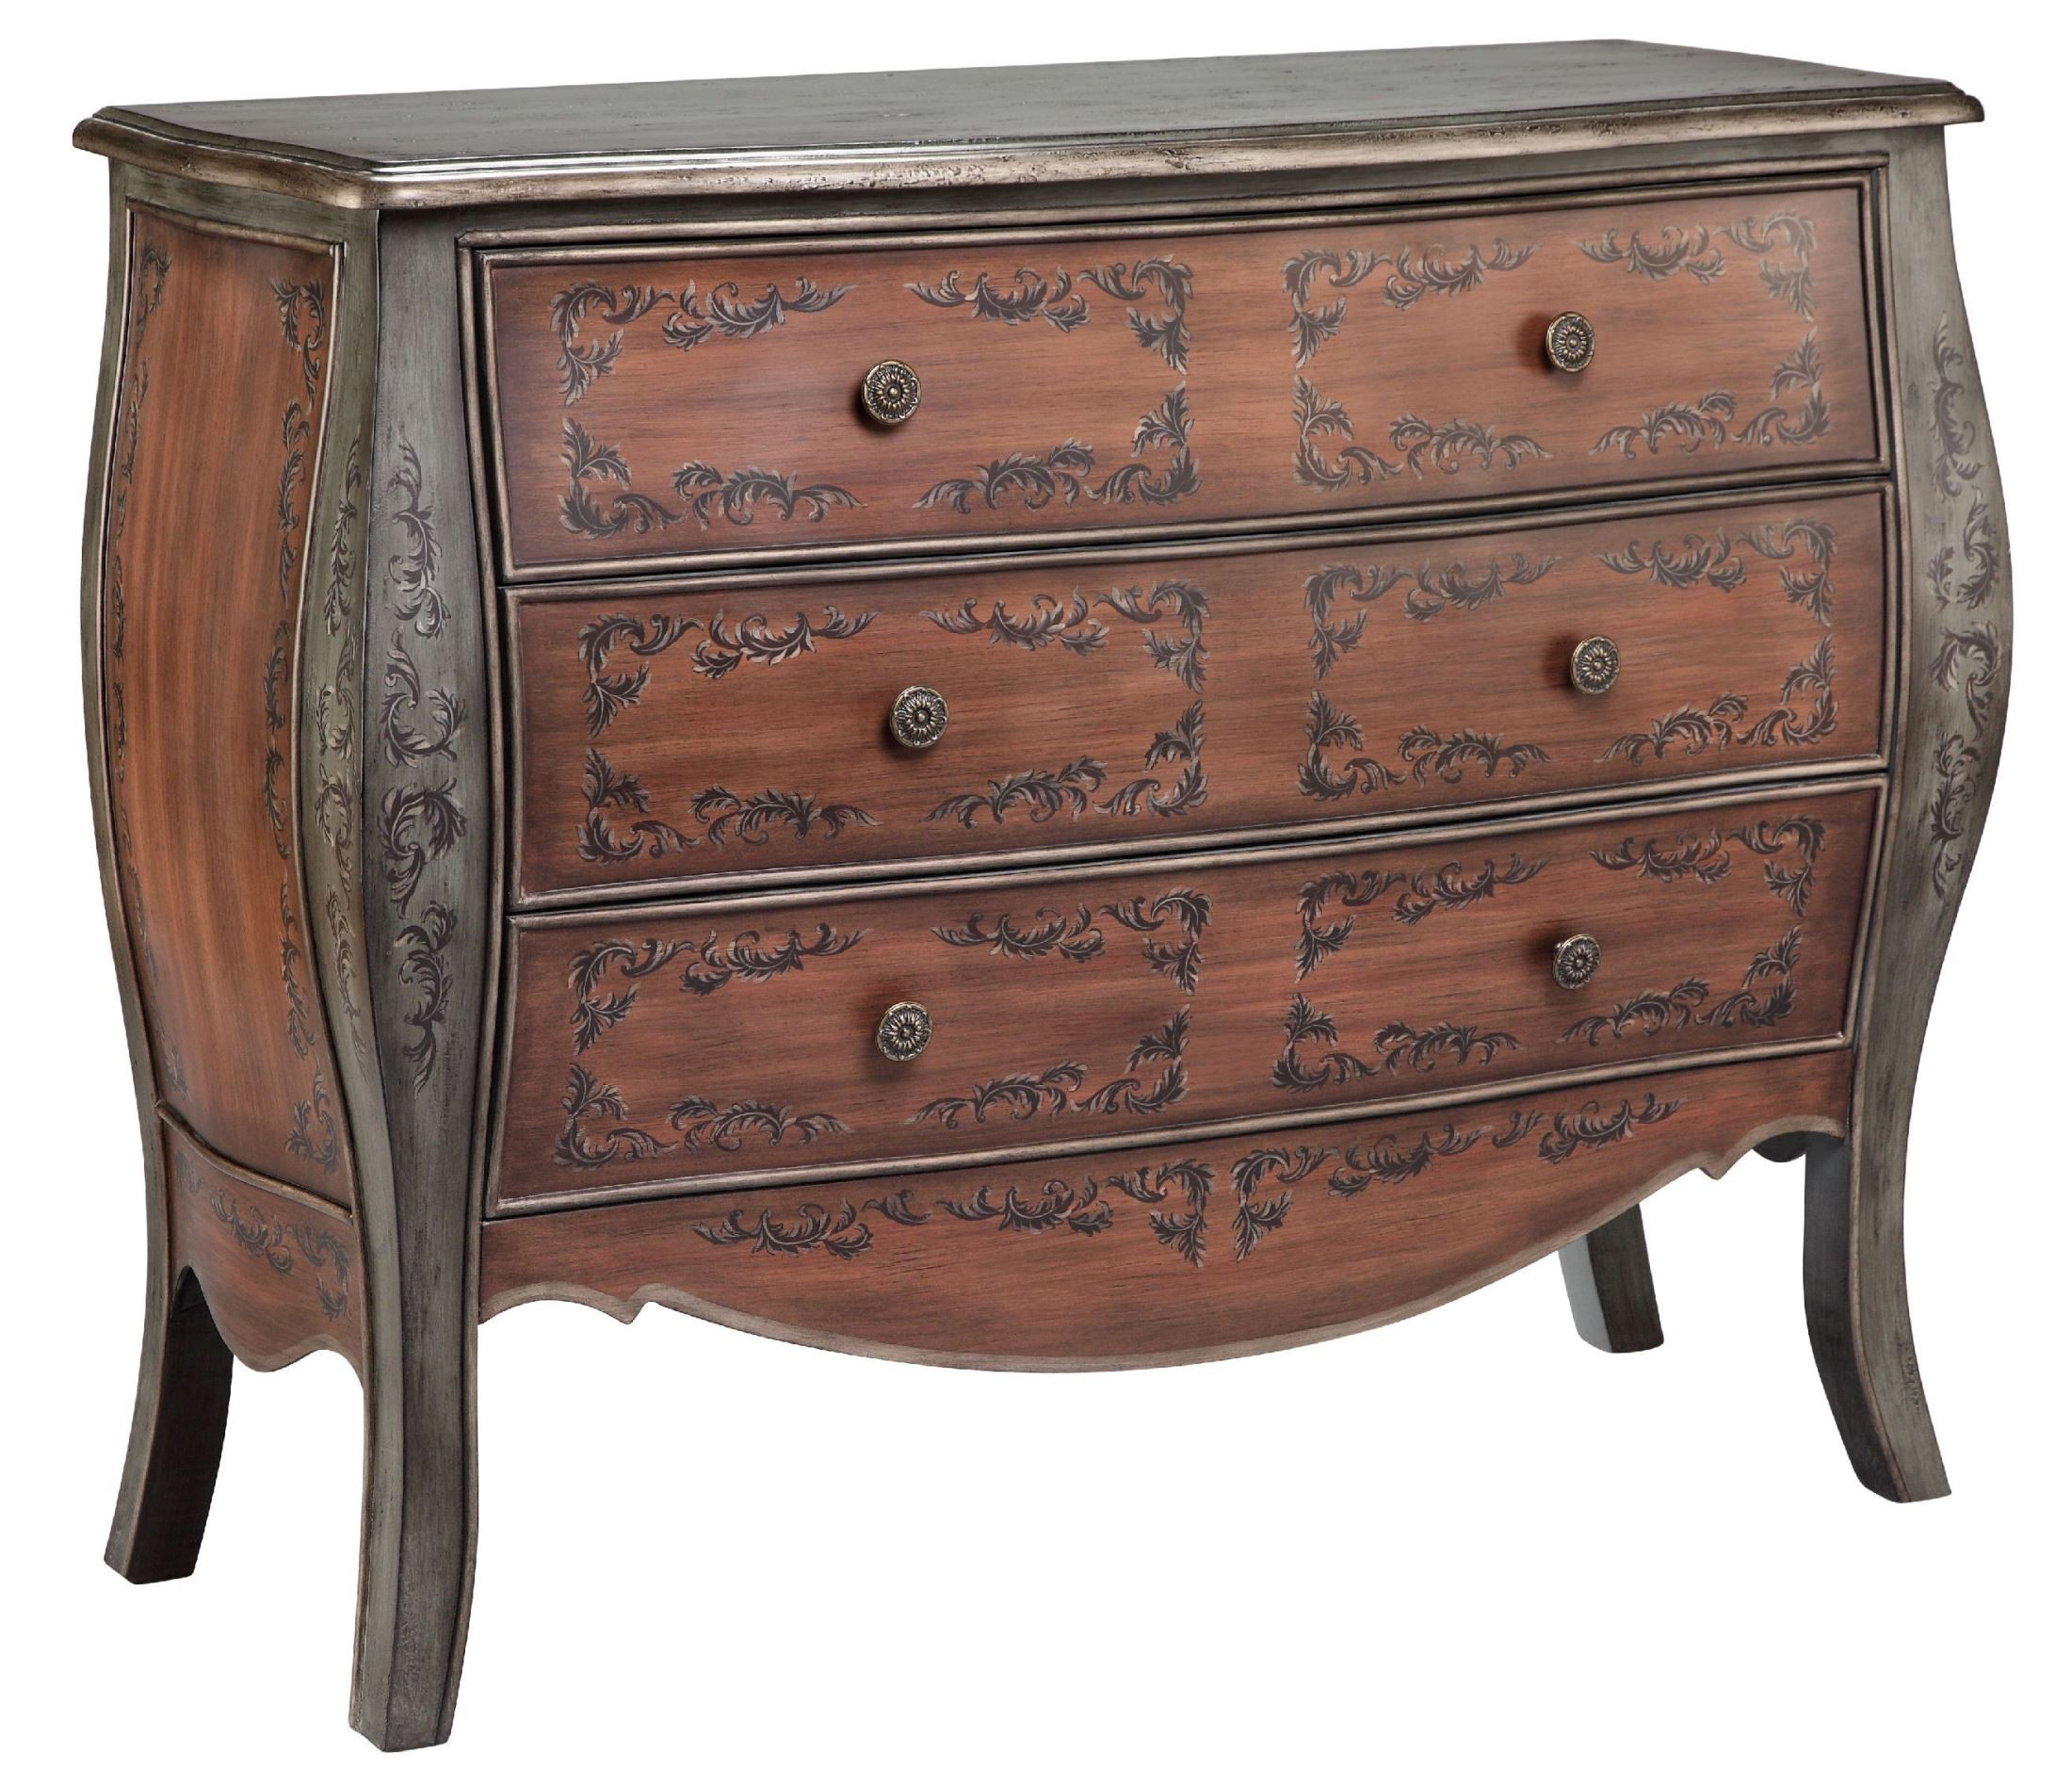 Donte hand painted accent chest 13225 stein world for Hand painted chests